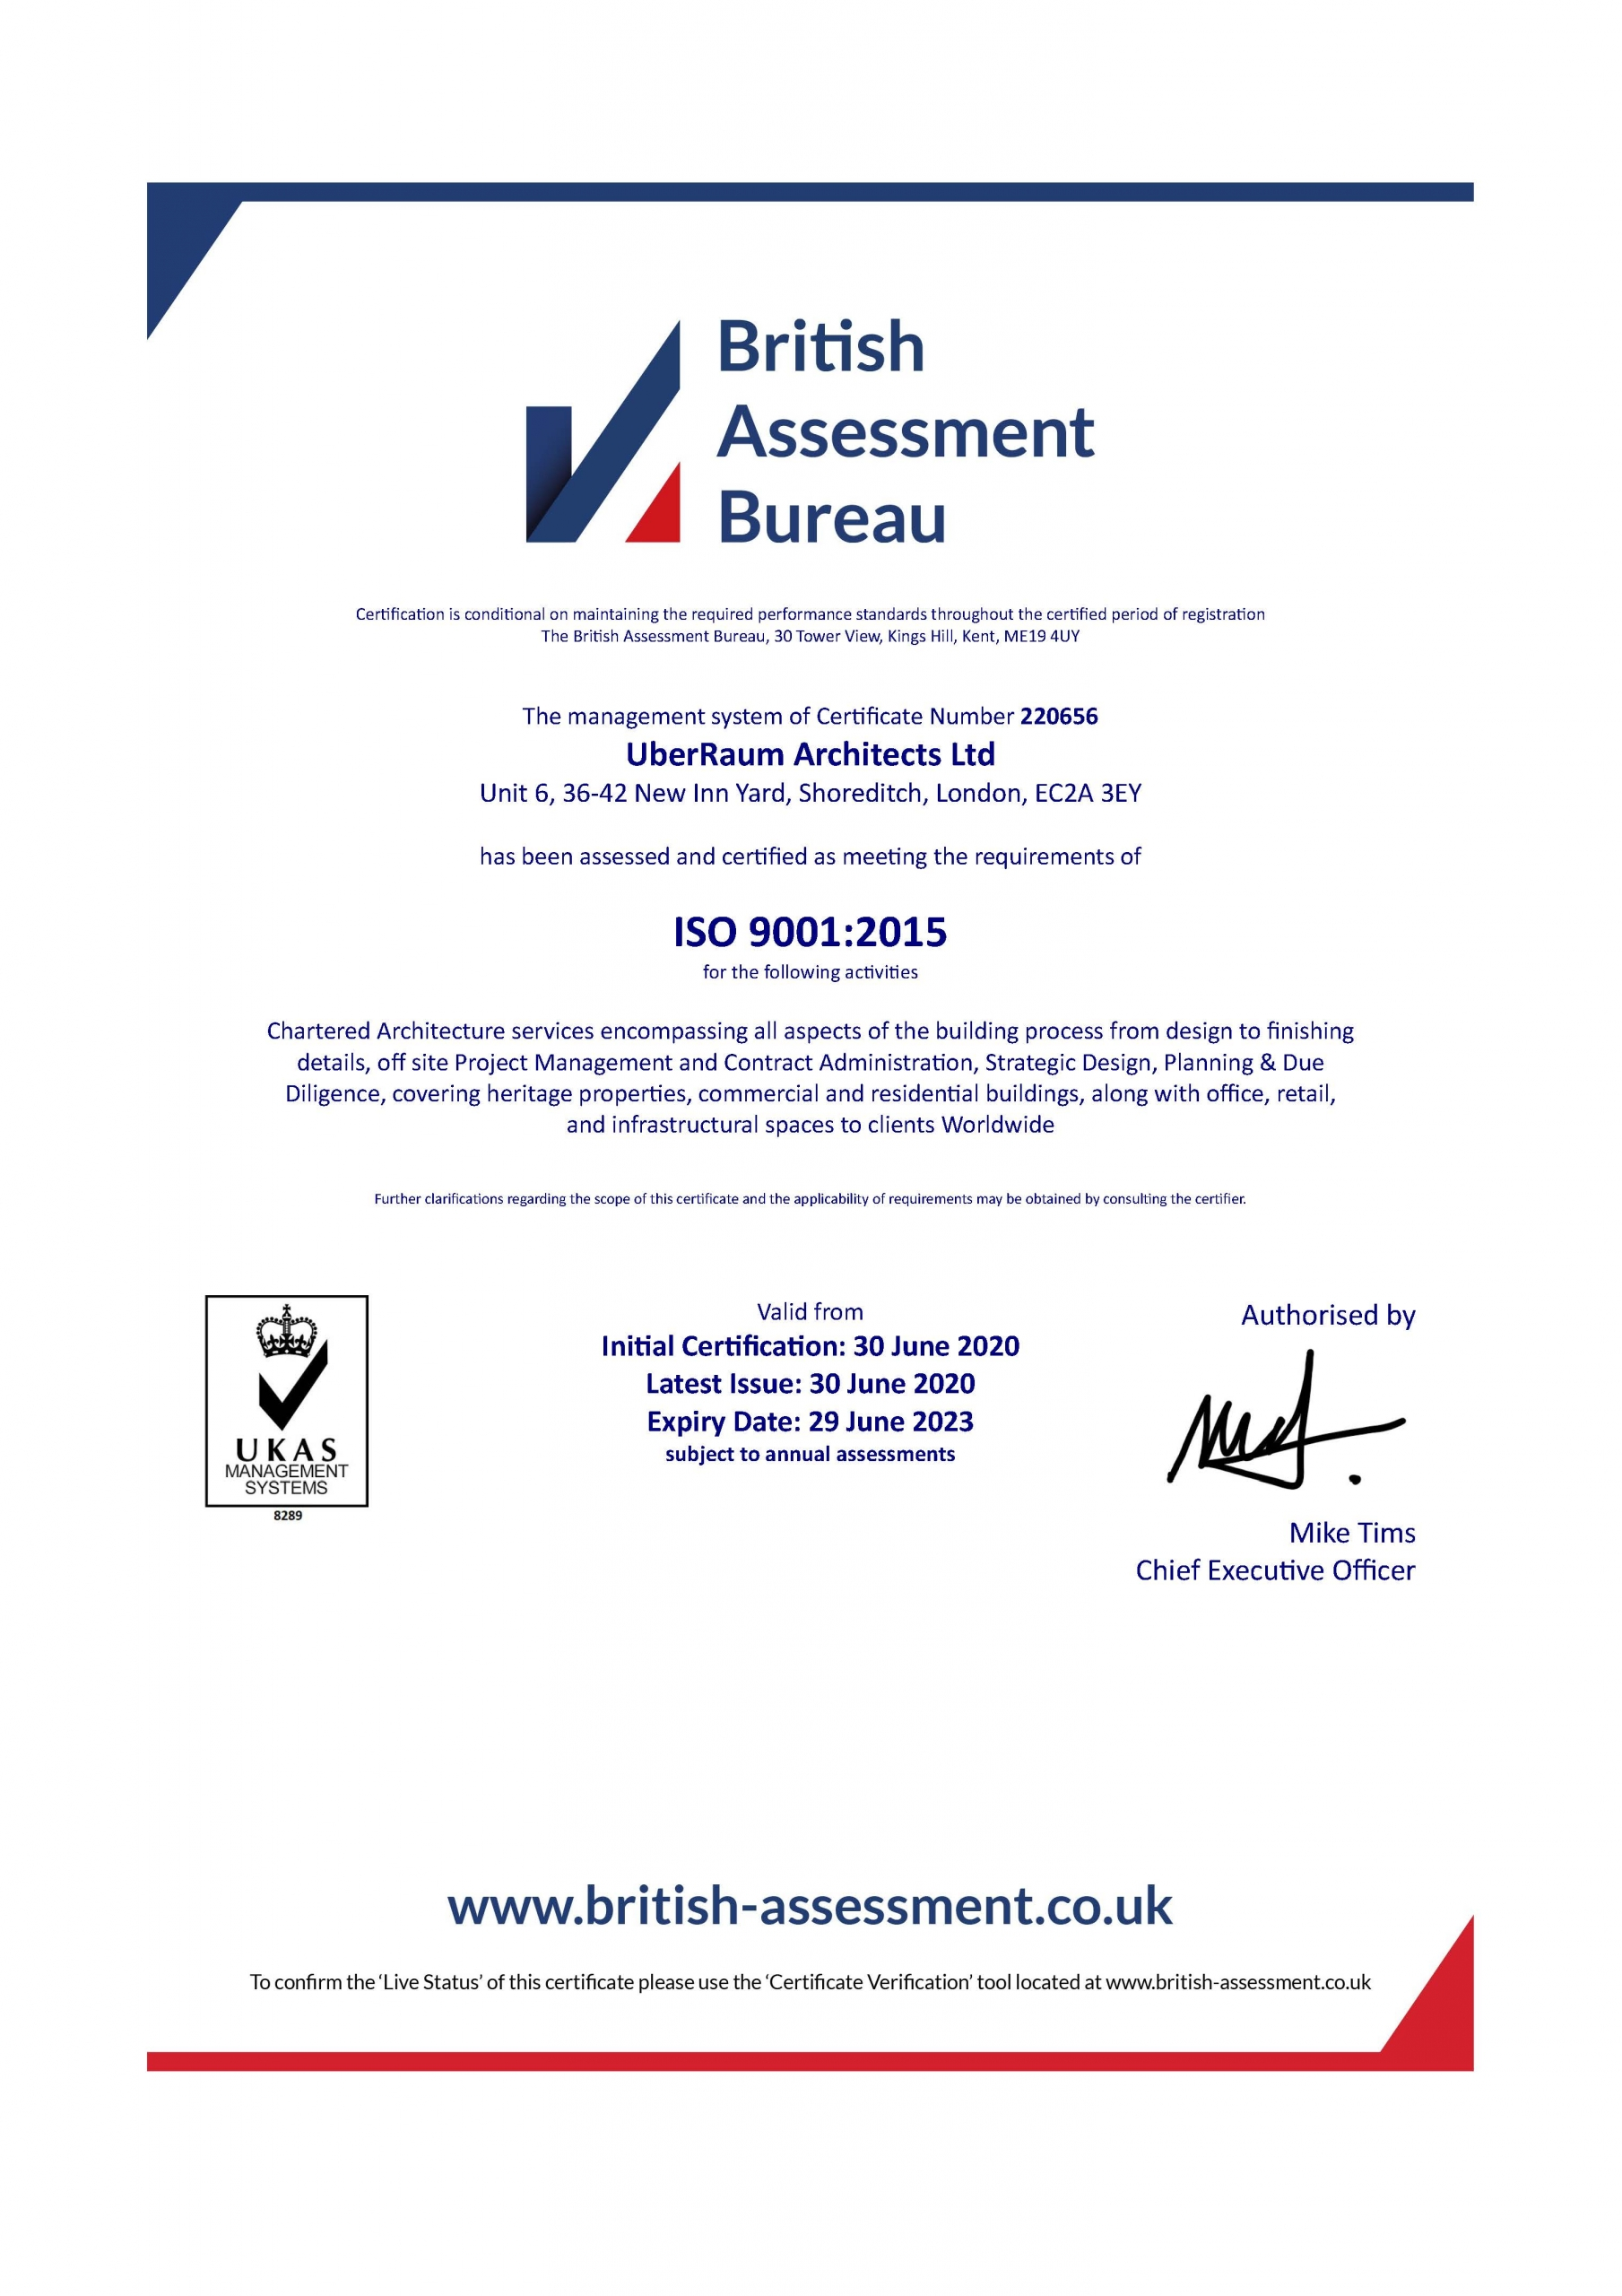 PROUD TO ANNOUNCE WE ARE ISO 20 CERTIFIED   ÜberRaum Architects